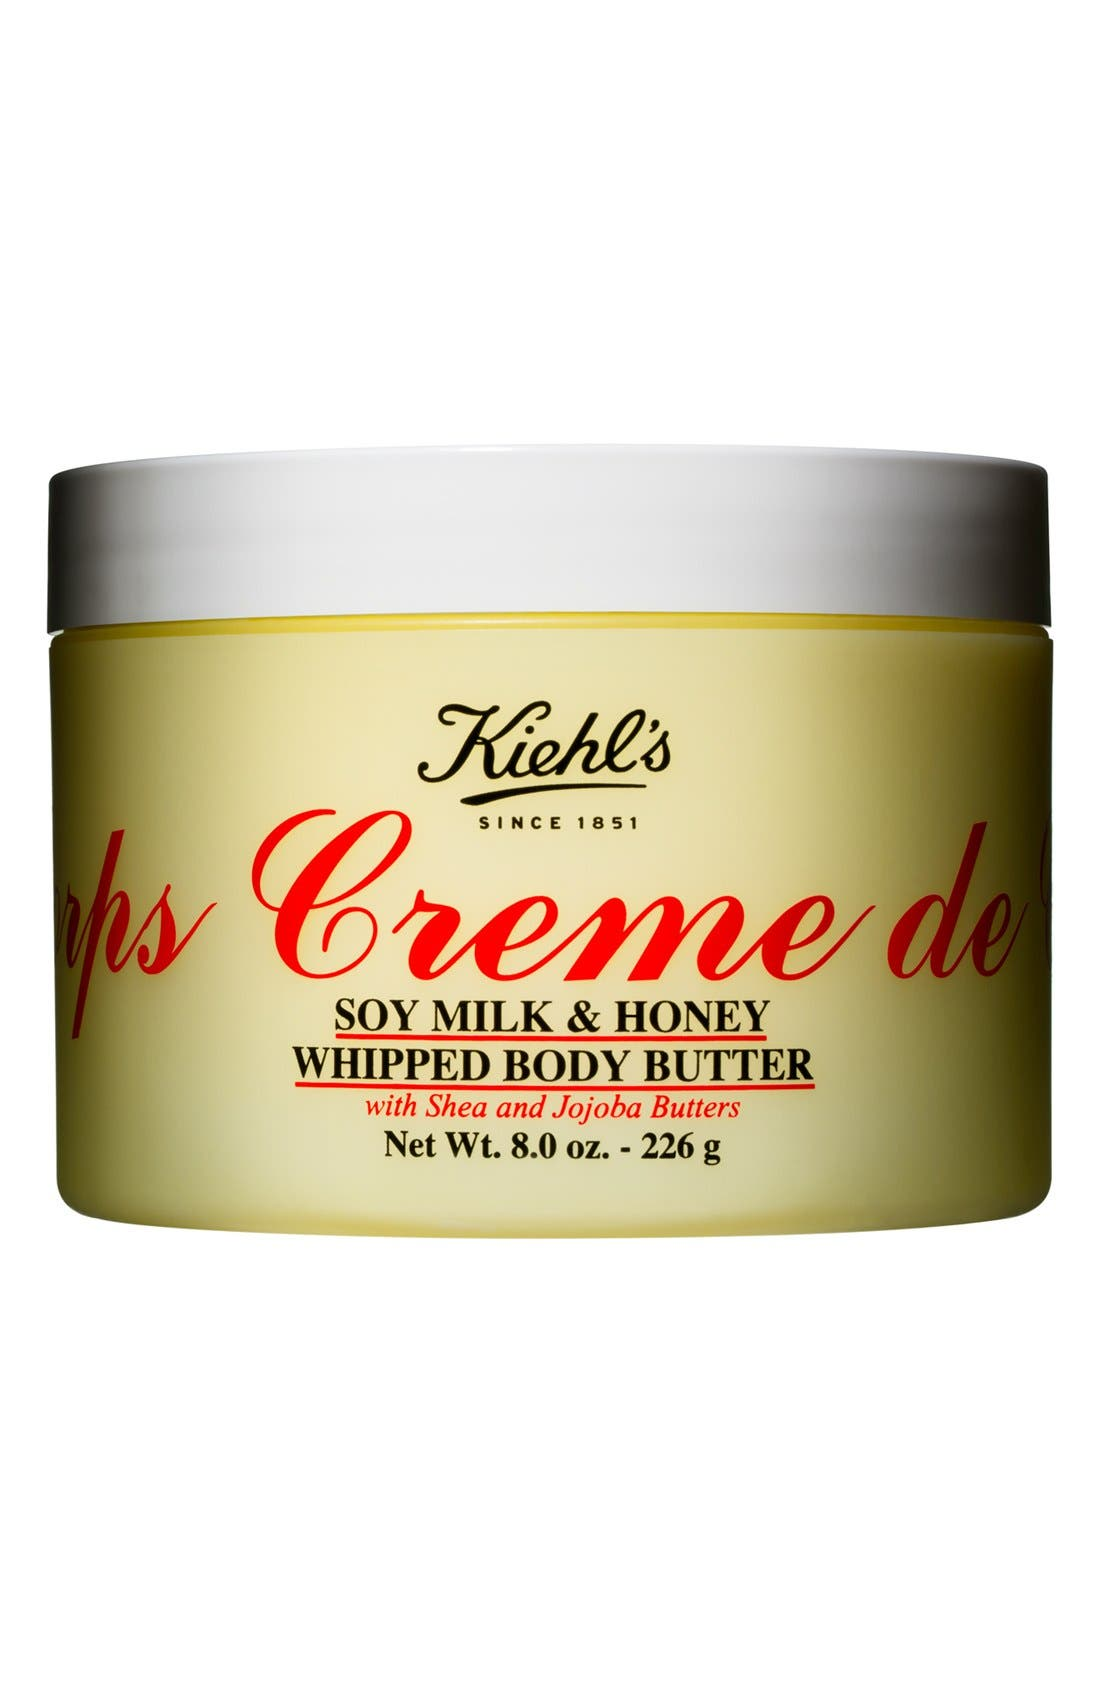 'Creme de Corps' Soy Milk & Honey Whipped Body Butter,                             Alternate thumbnail 4, color,                             NO COLOR